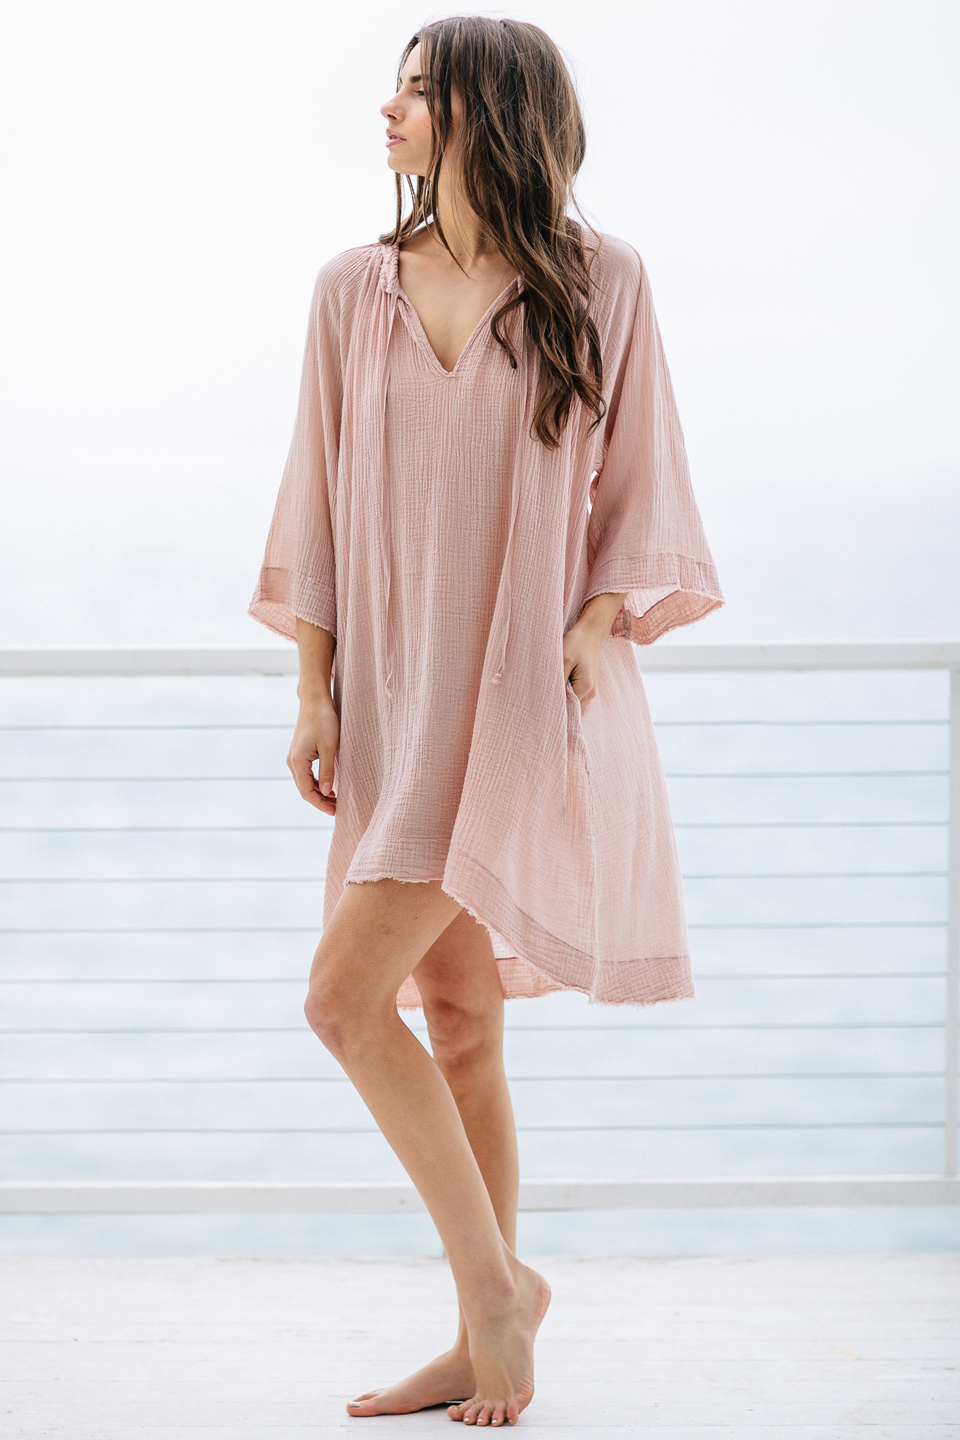 Joshua Tree mid-length caftan - dusty rose